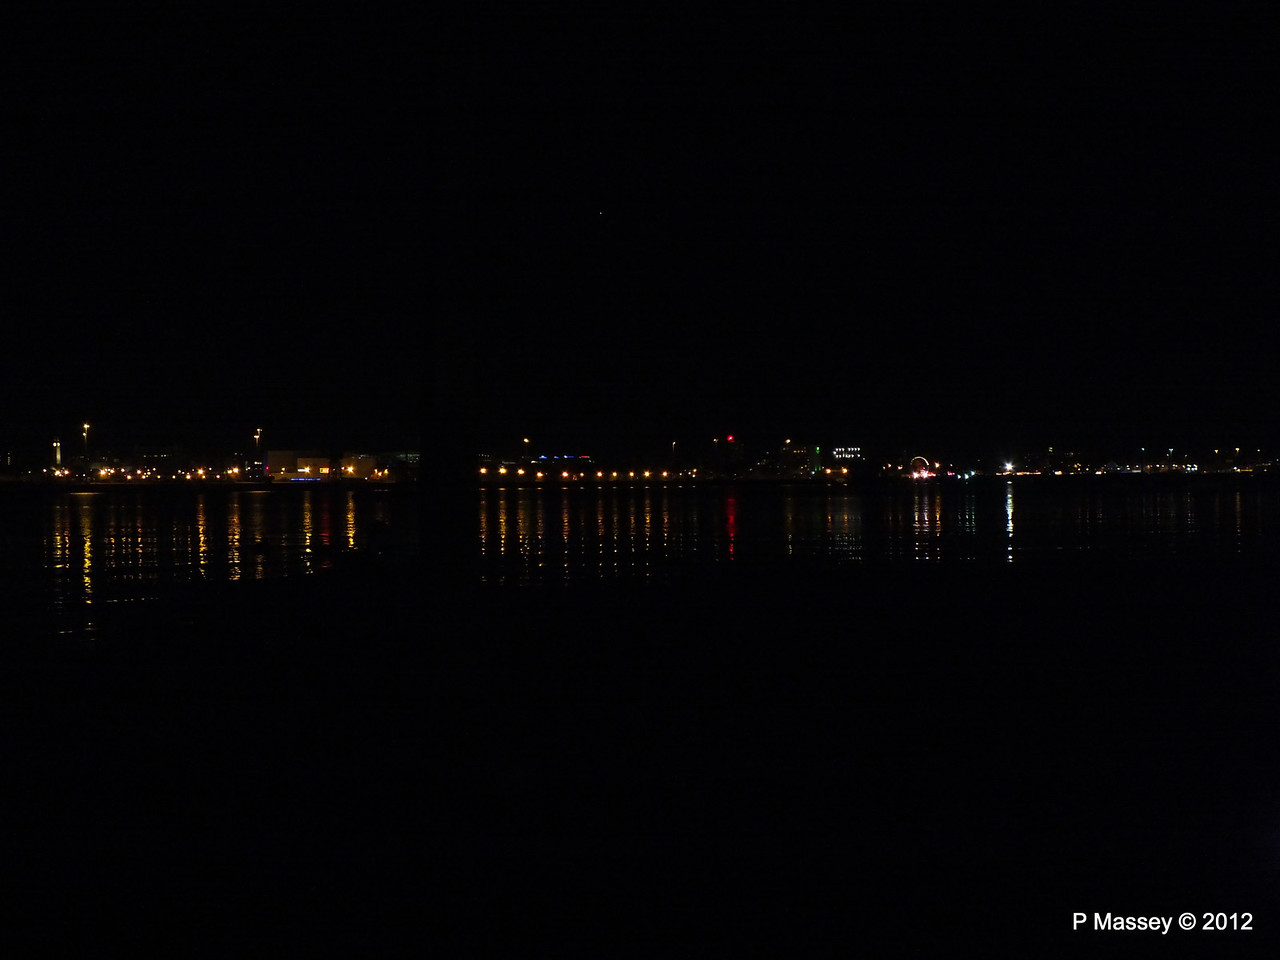 Mayflower Park at night from Marchwood PDM 03-11-2012 20-28-49